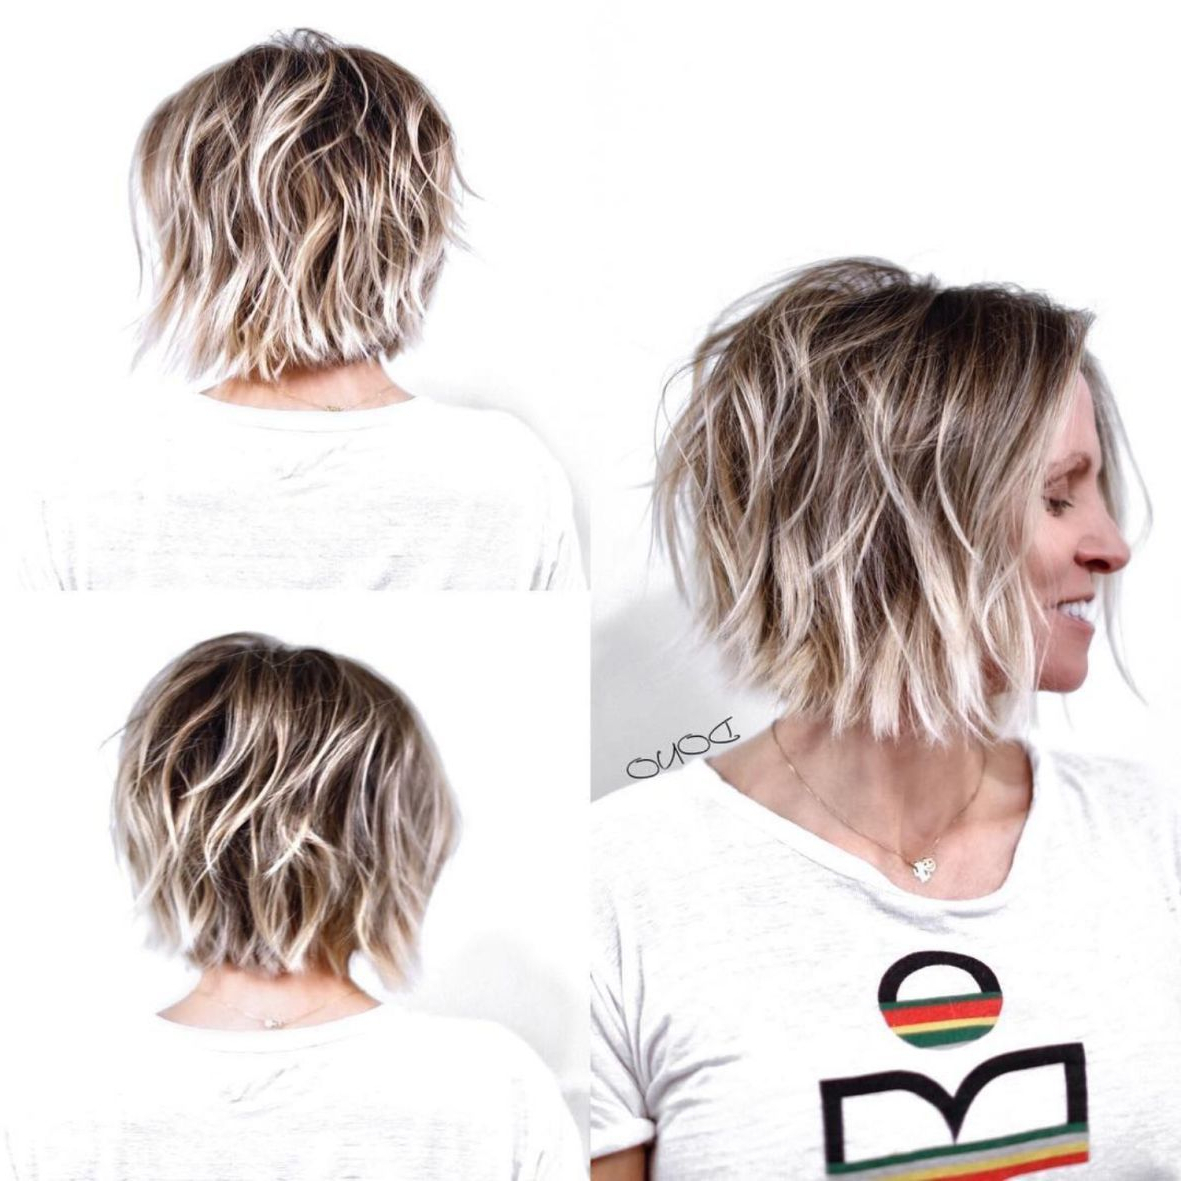 70 Overwhelming Ideas For Short Choppy Haircuts In 2019 Pertaining To Widely Used Curly Bronde Haircuts With Choppy Ends (Gallery 20 of 20)